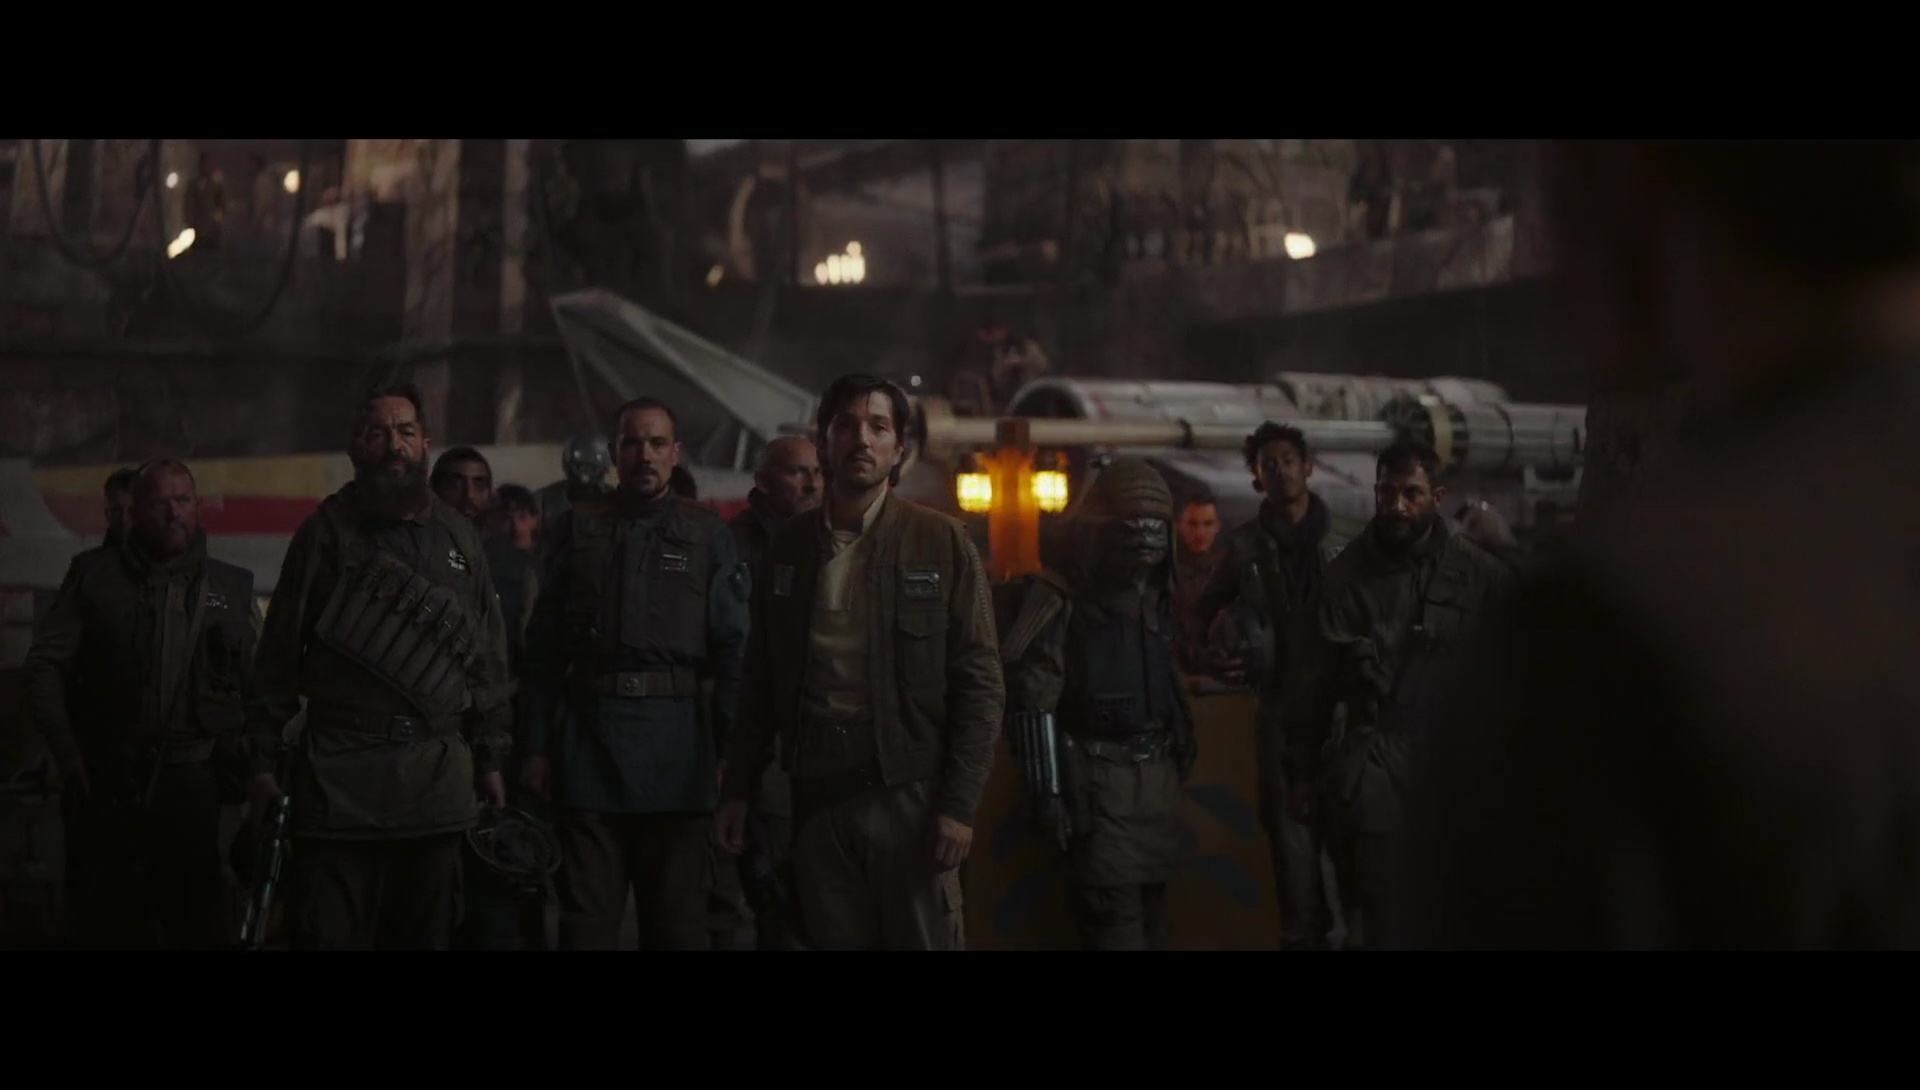 Rogue One Una Historia De Star Wars 1080p Lat-Cast-Ing 5.1 (2016)